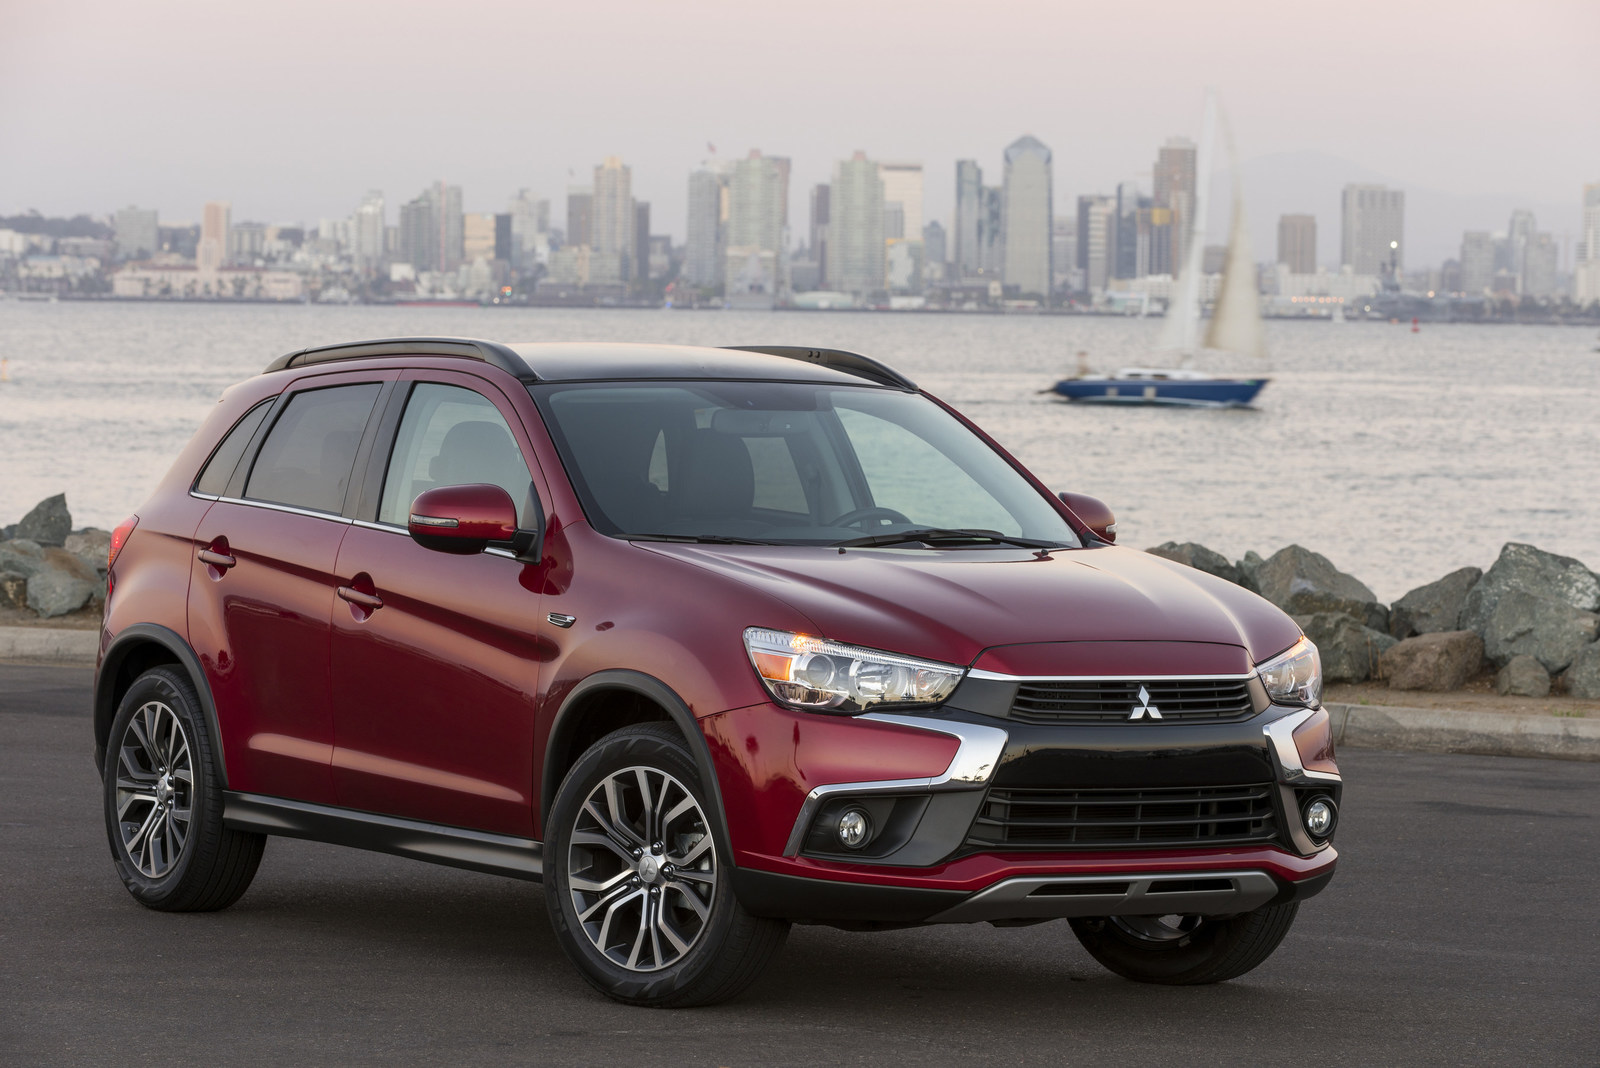 Mitsubishi Motors Closes 2016 With 4th Consecutive Year Of